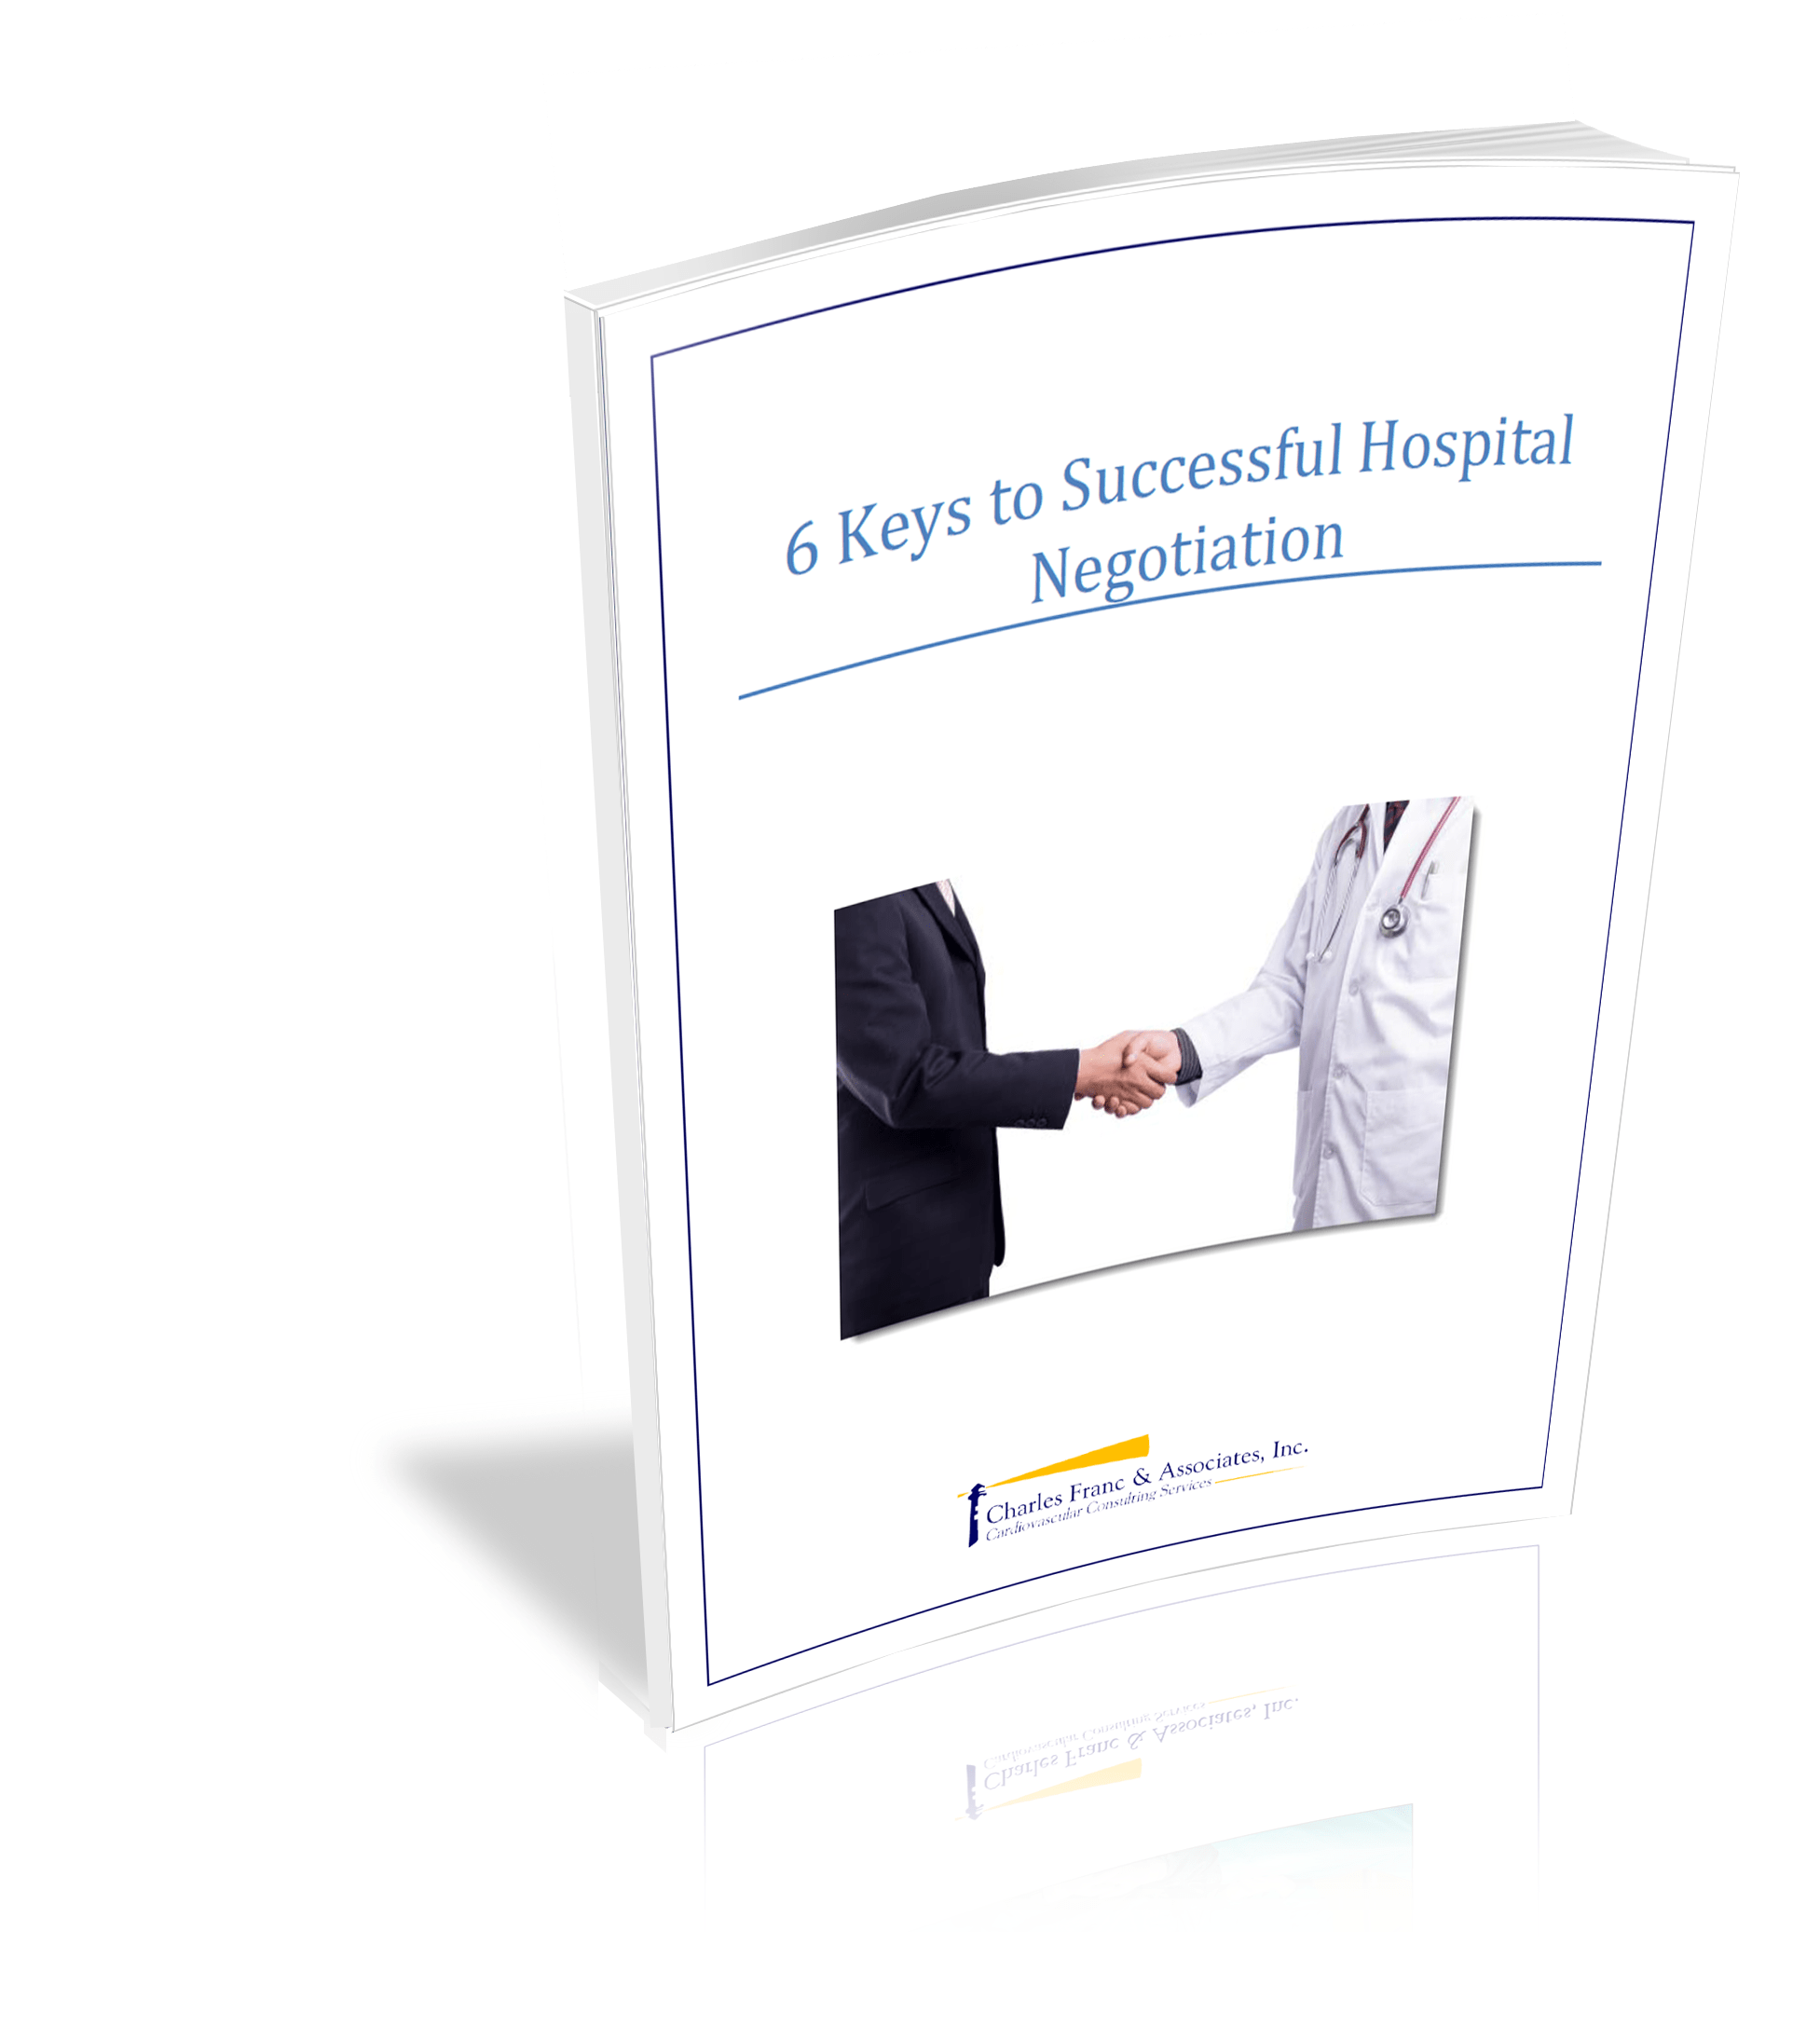 Six Keys to Successful Negotiation with Your Hospital